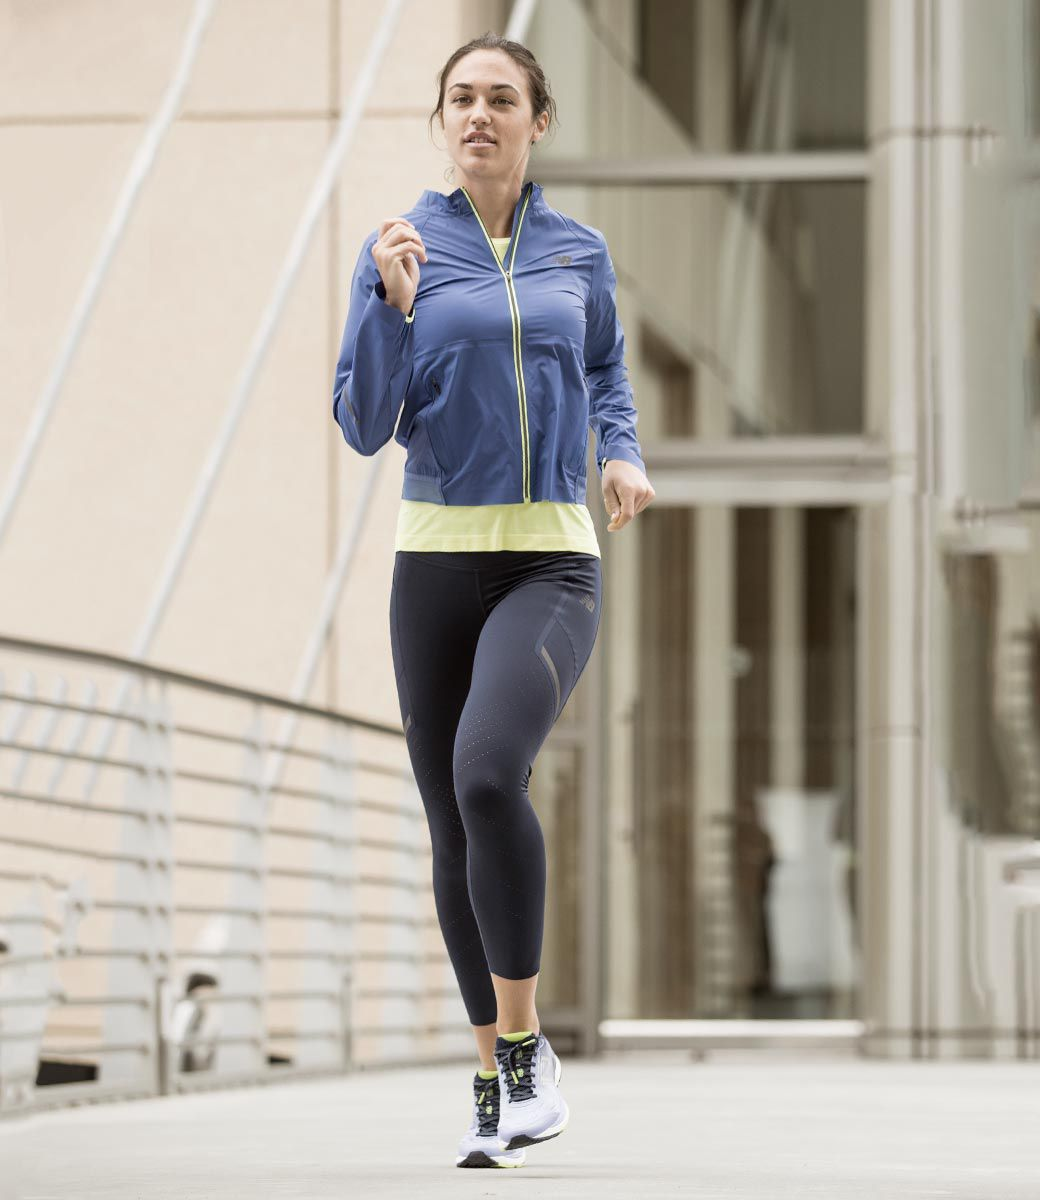 New Balance US Womens Running Weekend Look Email,